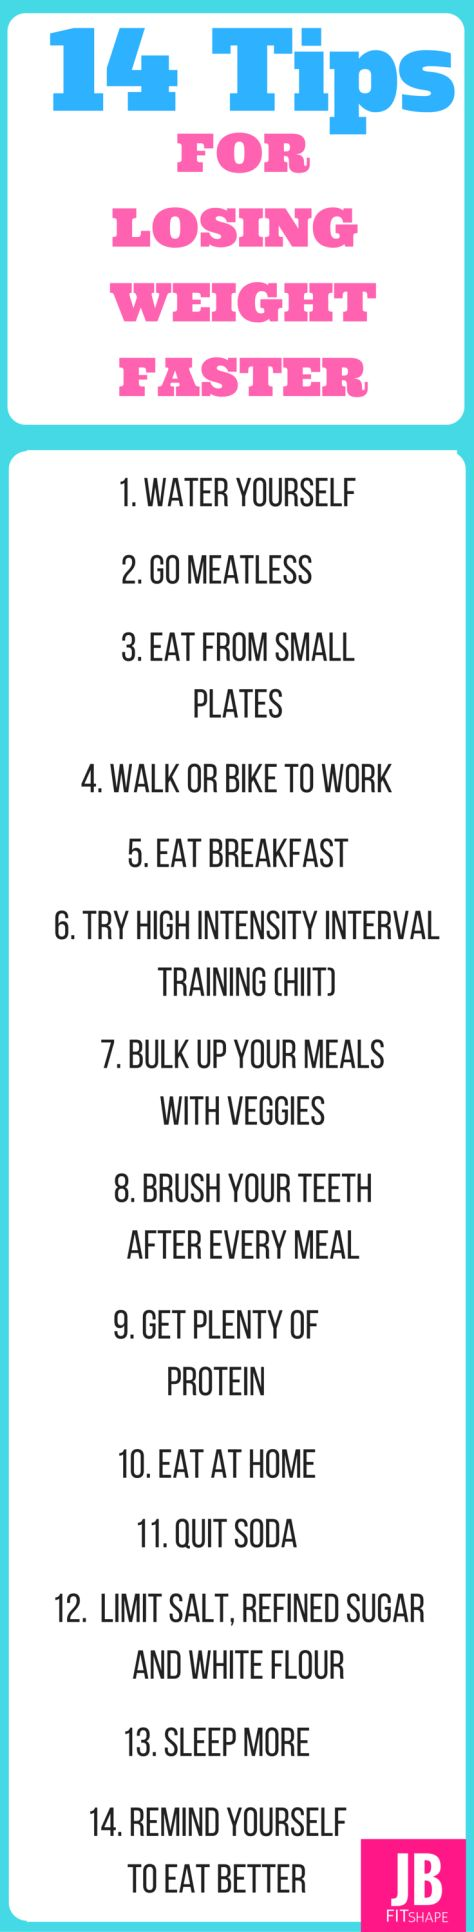 14 Tips For Losing Weight Faster!